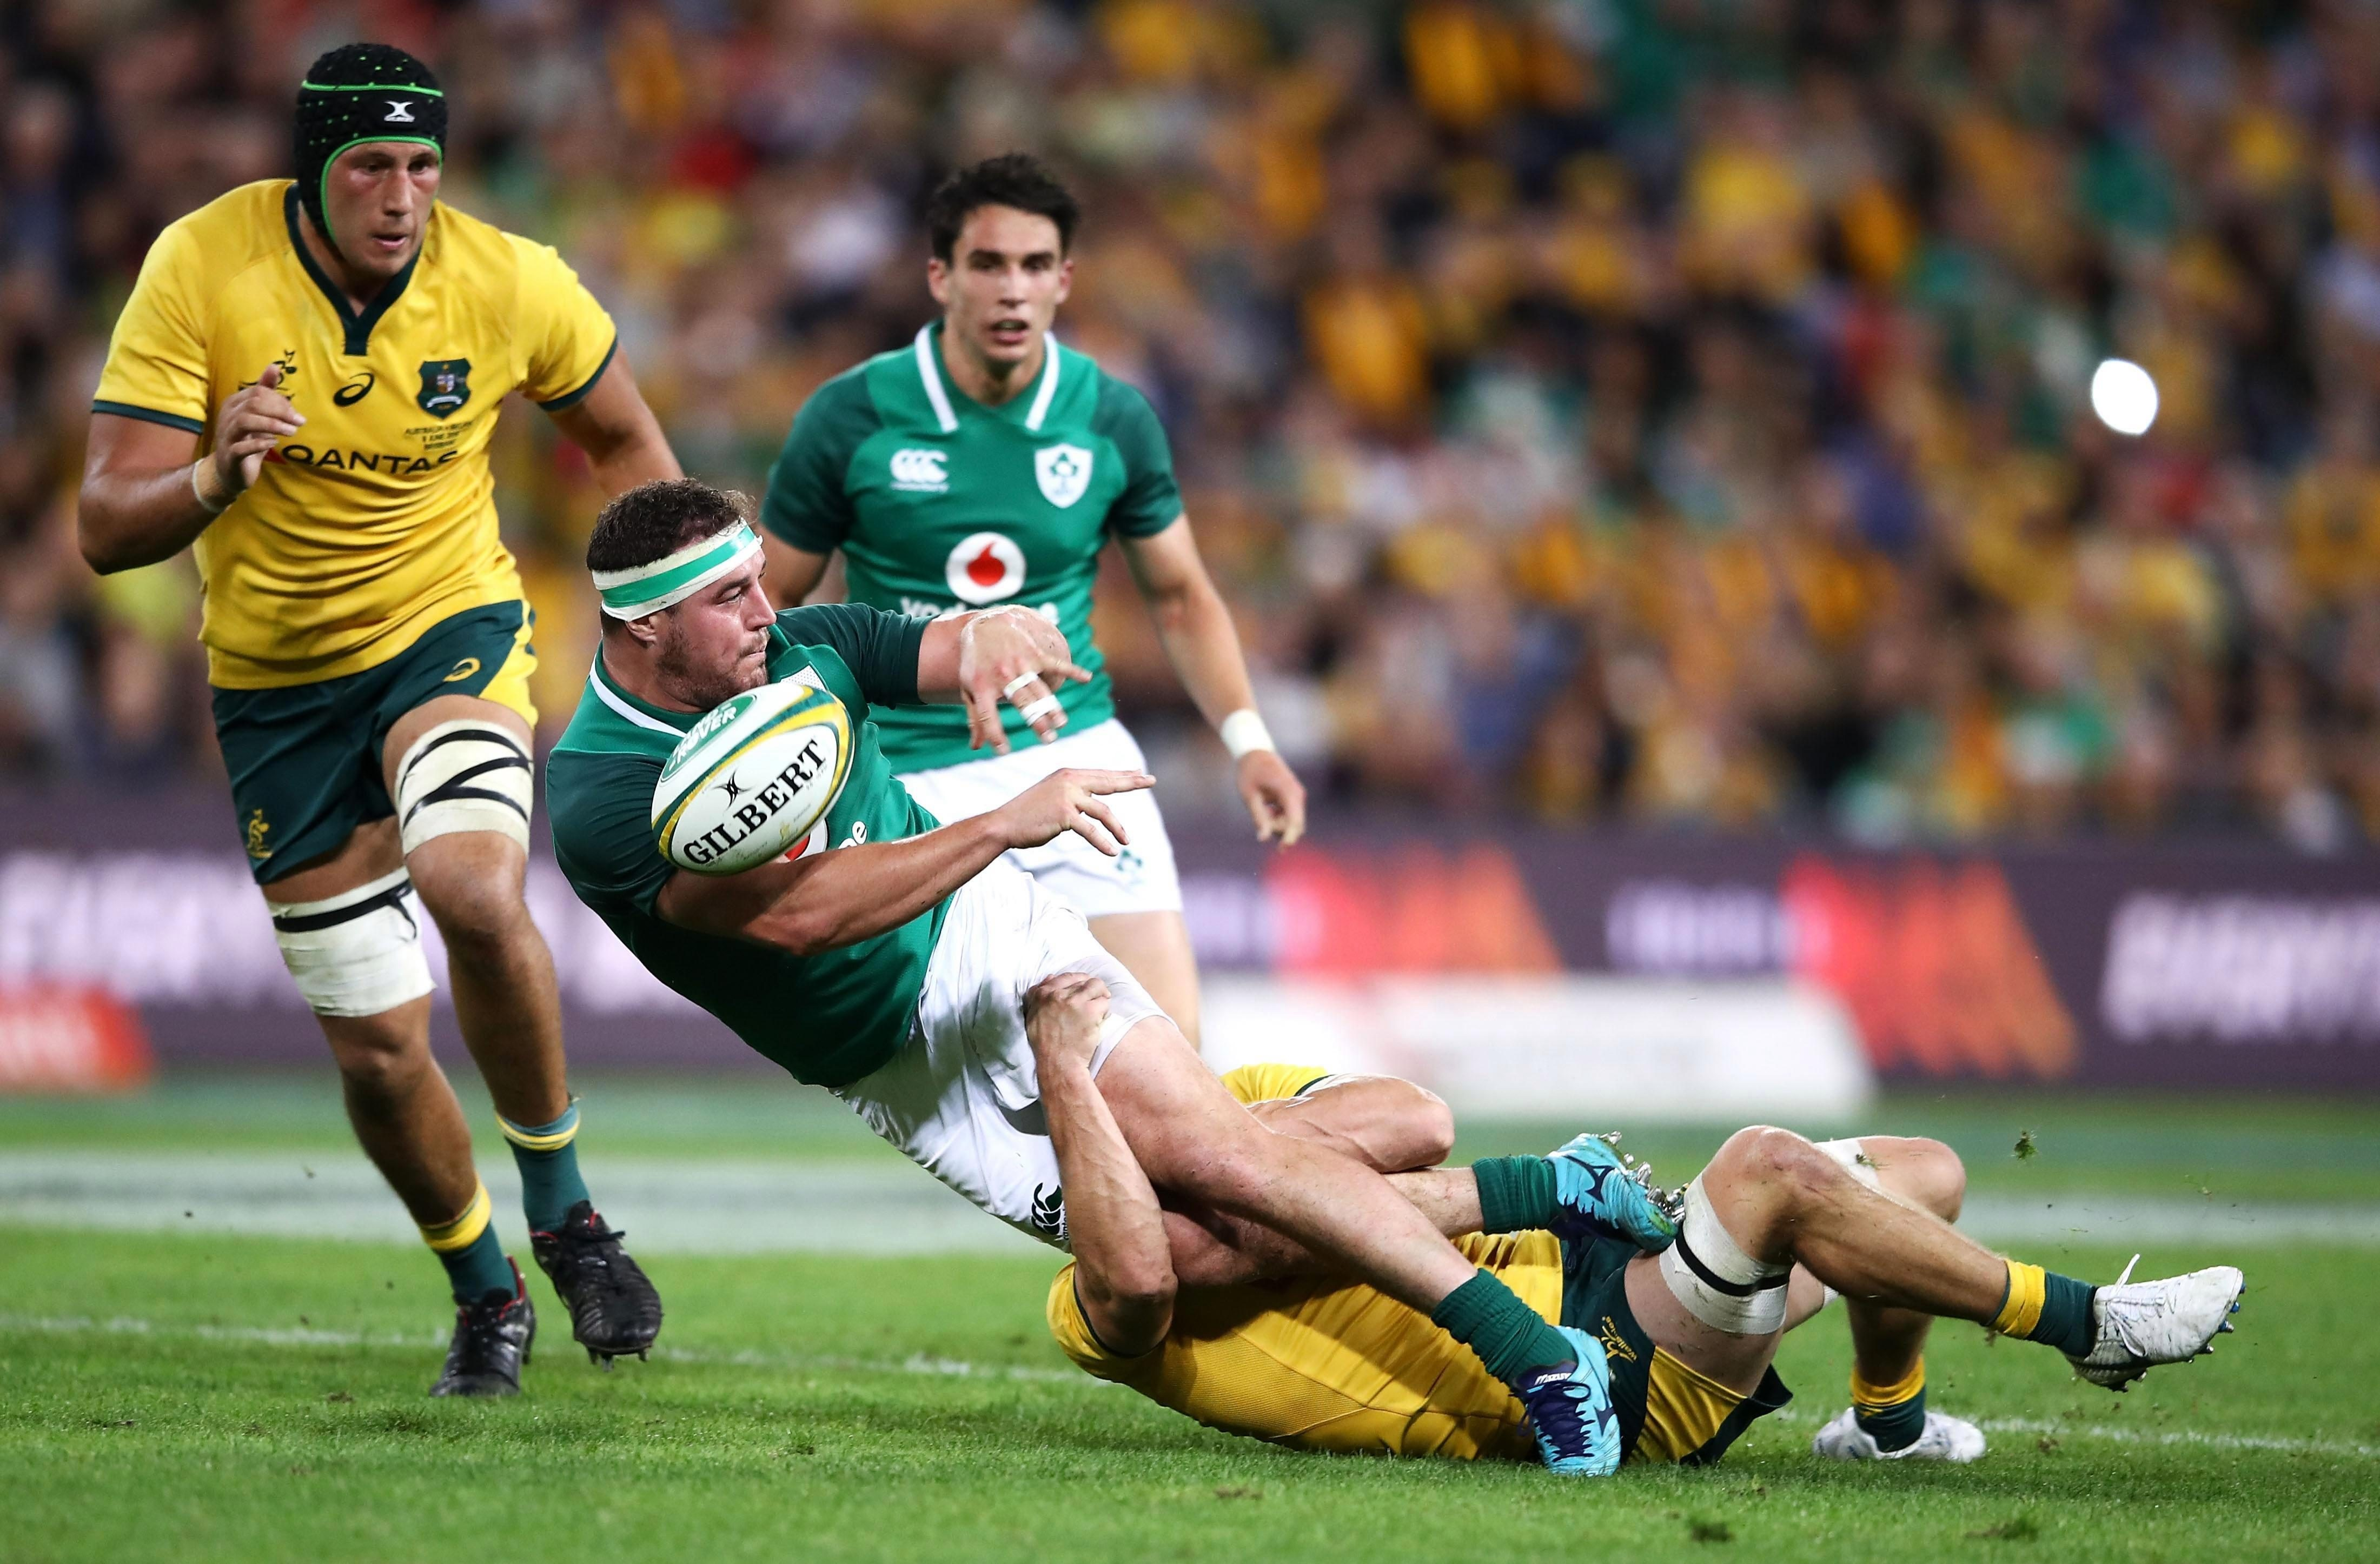 Ireland found it difficult to find their rhythm against an aggressive and defensively solid Australia side